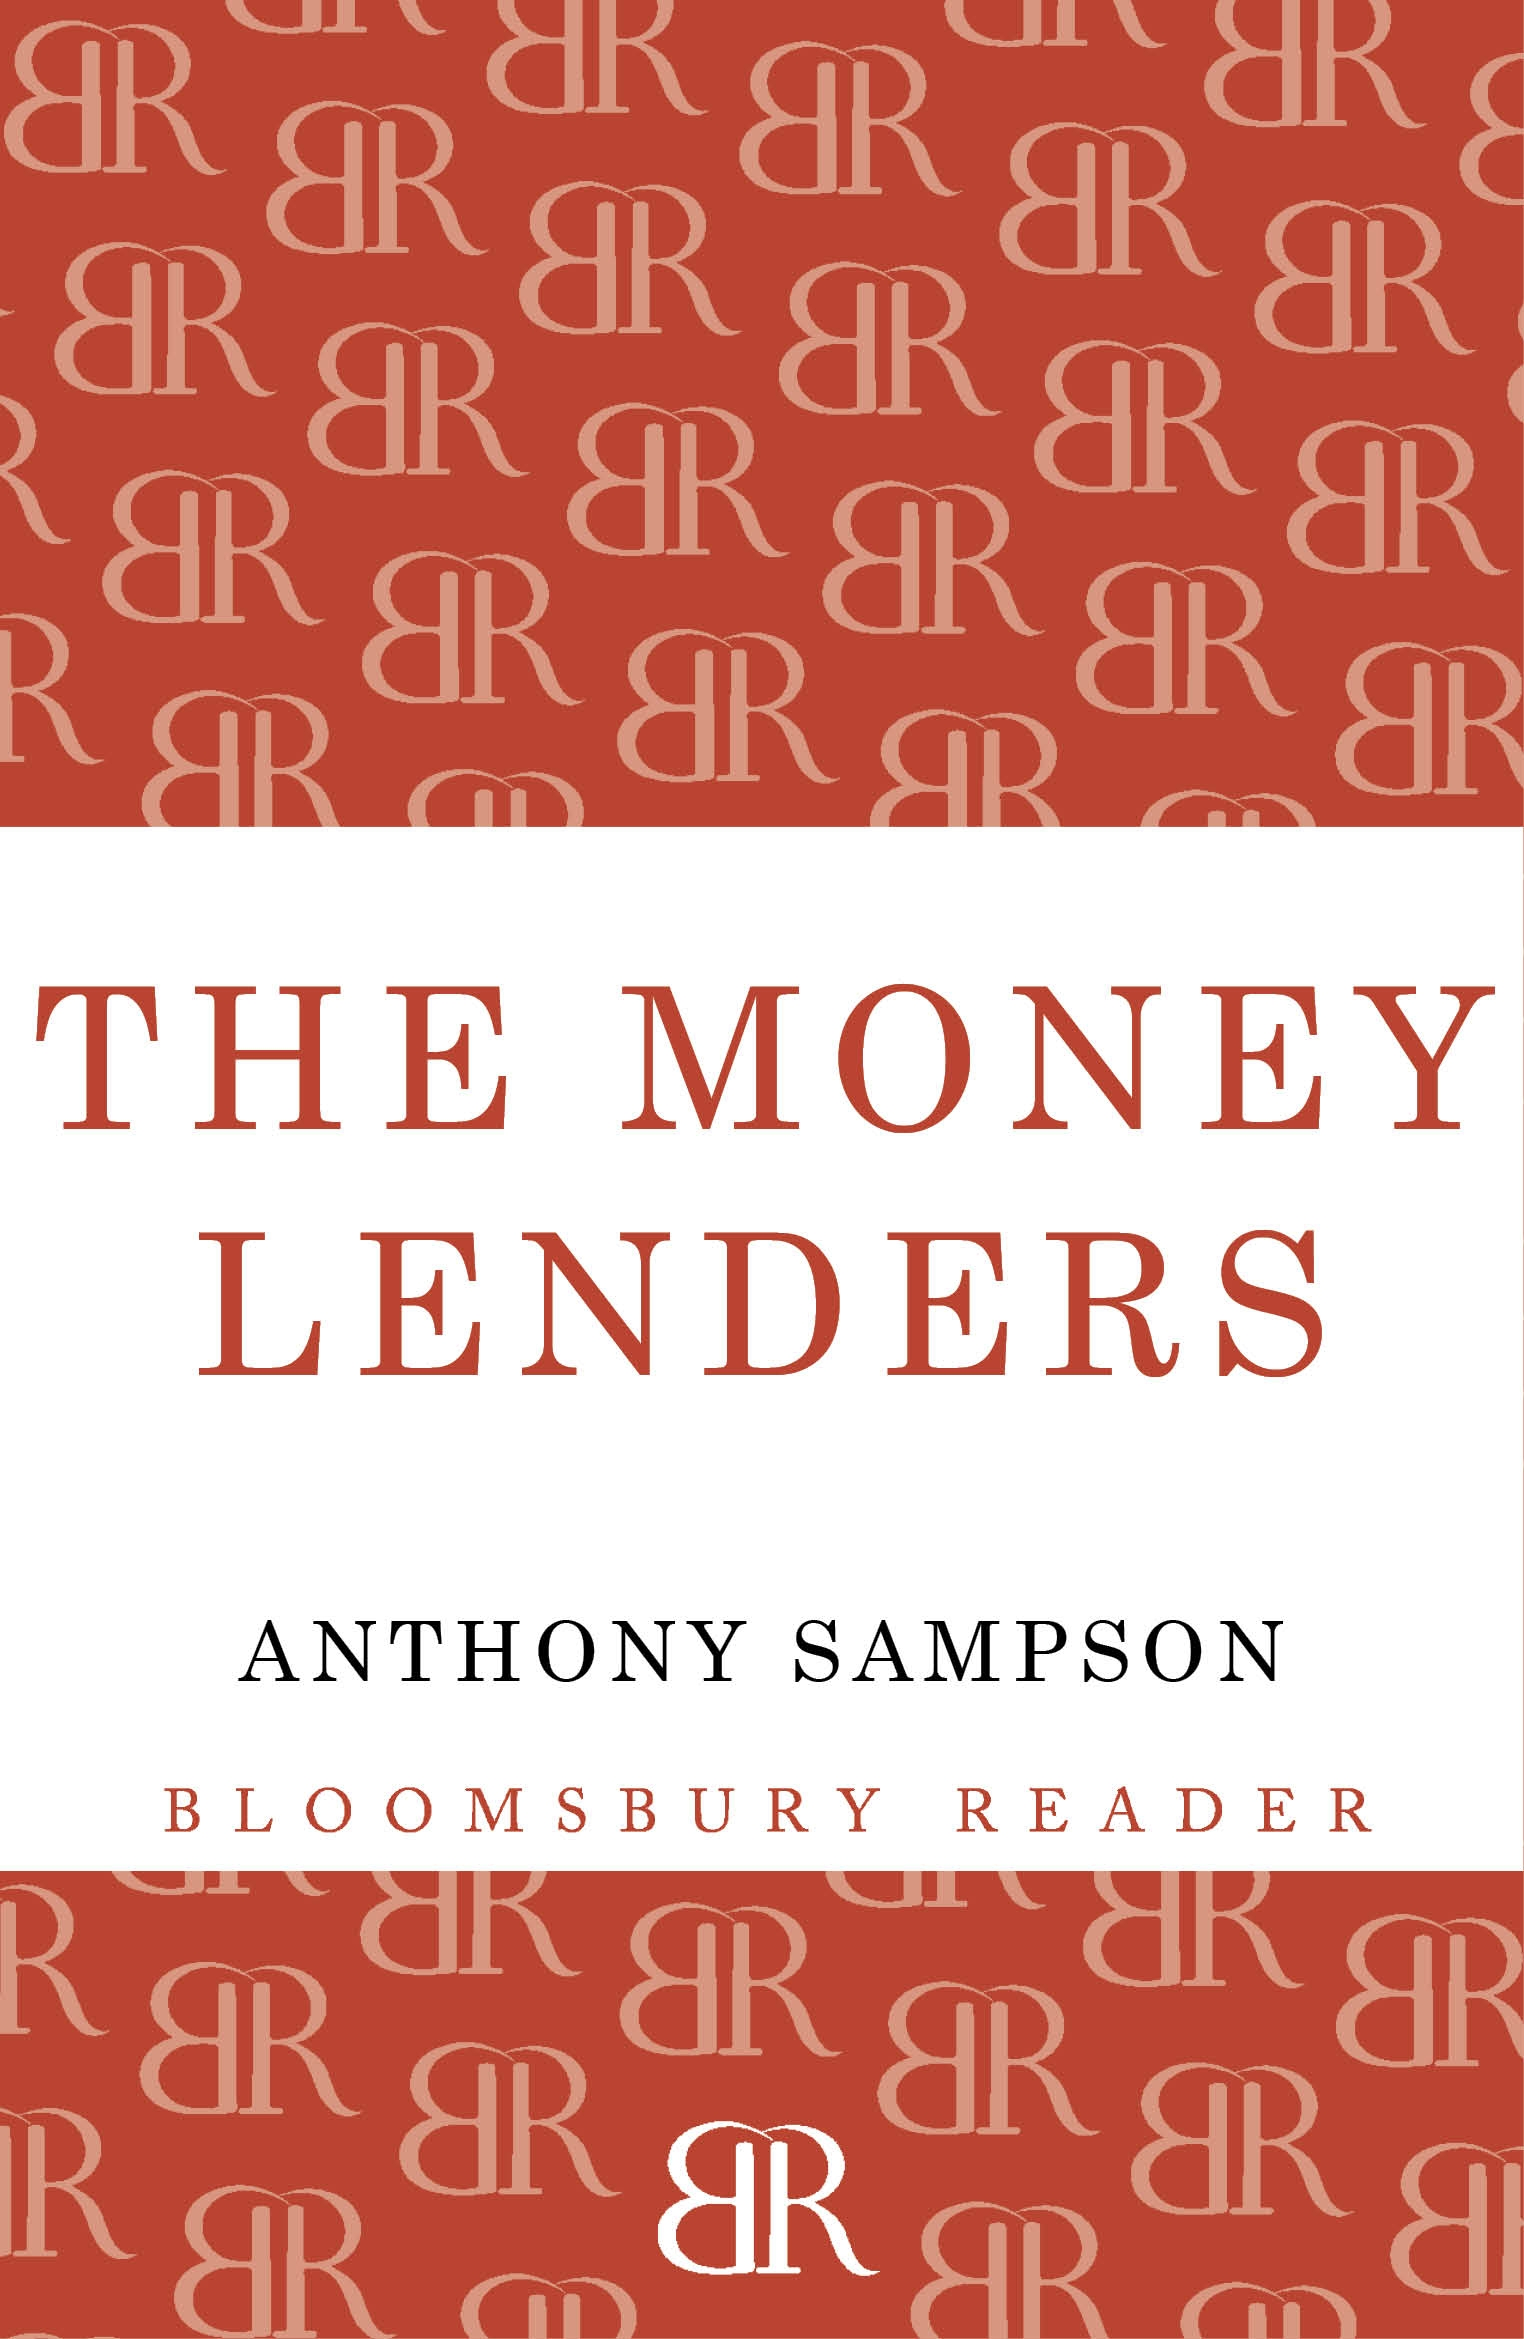 The Money Lenders